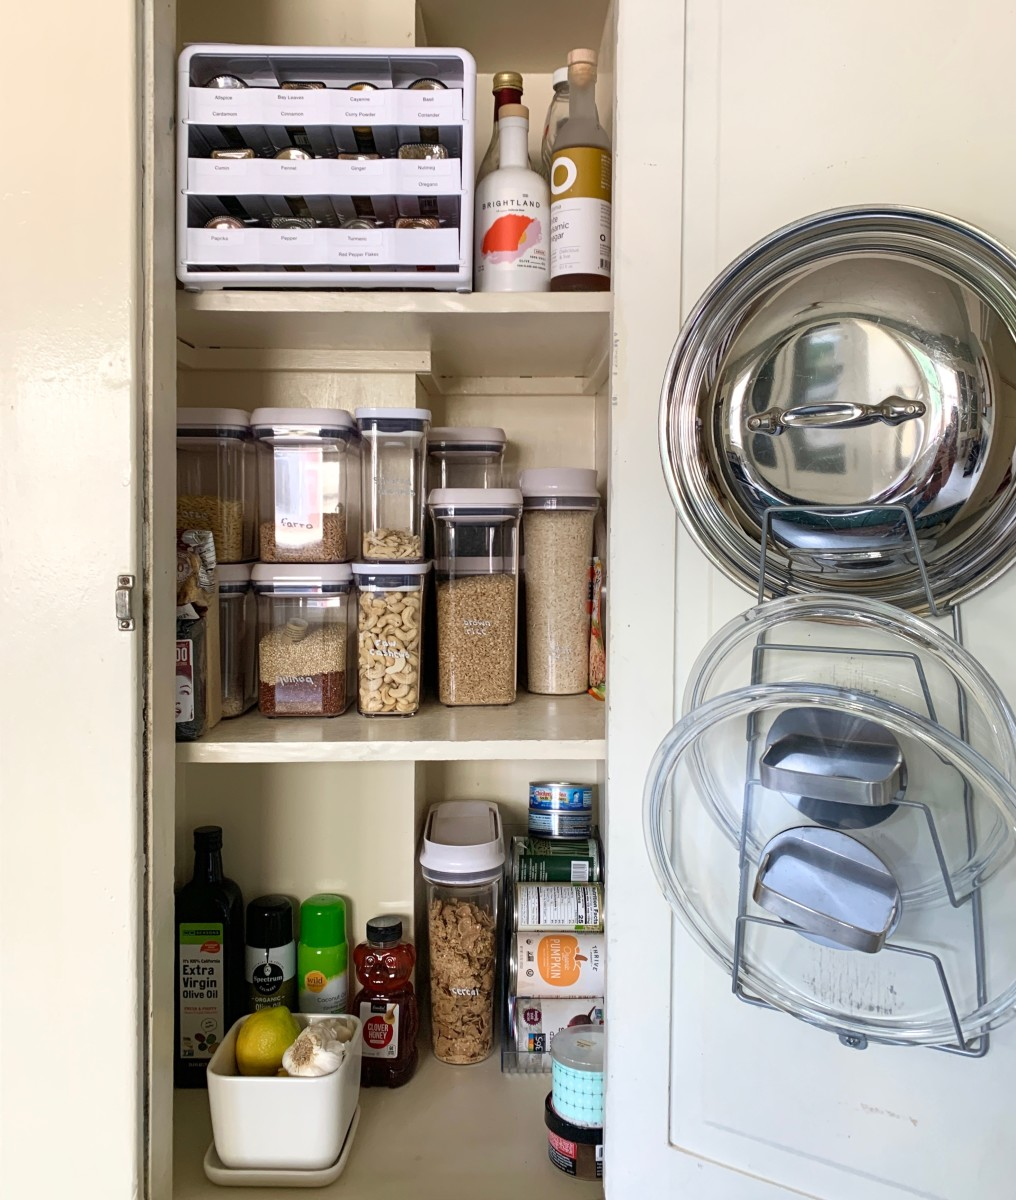 Youcopia 24-Bottle Spice Rack,Marie Condo Ceramic Berry Colander, OXO Short Rectangle POP Containers,OXO Cereal Containers, Plastic Soda Can Container